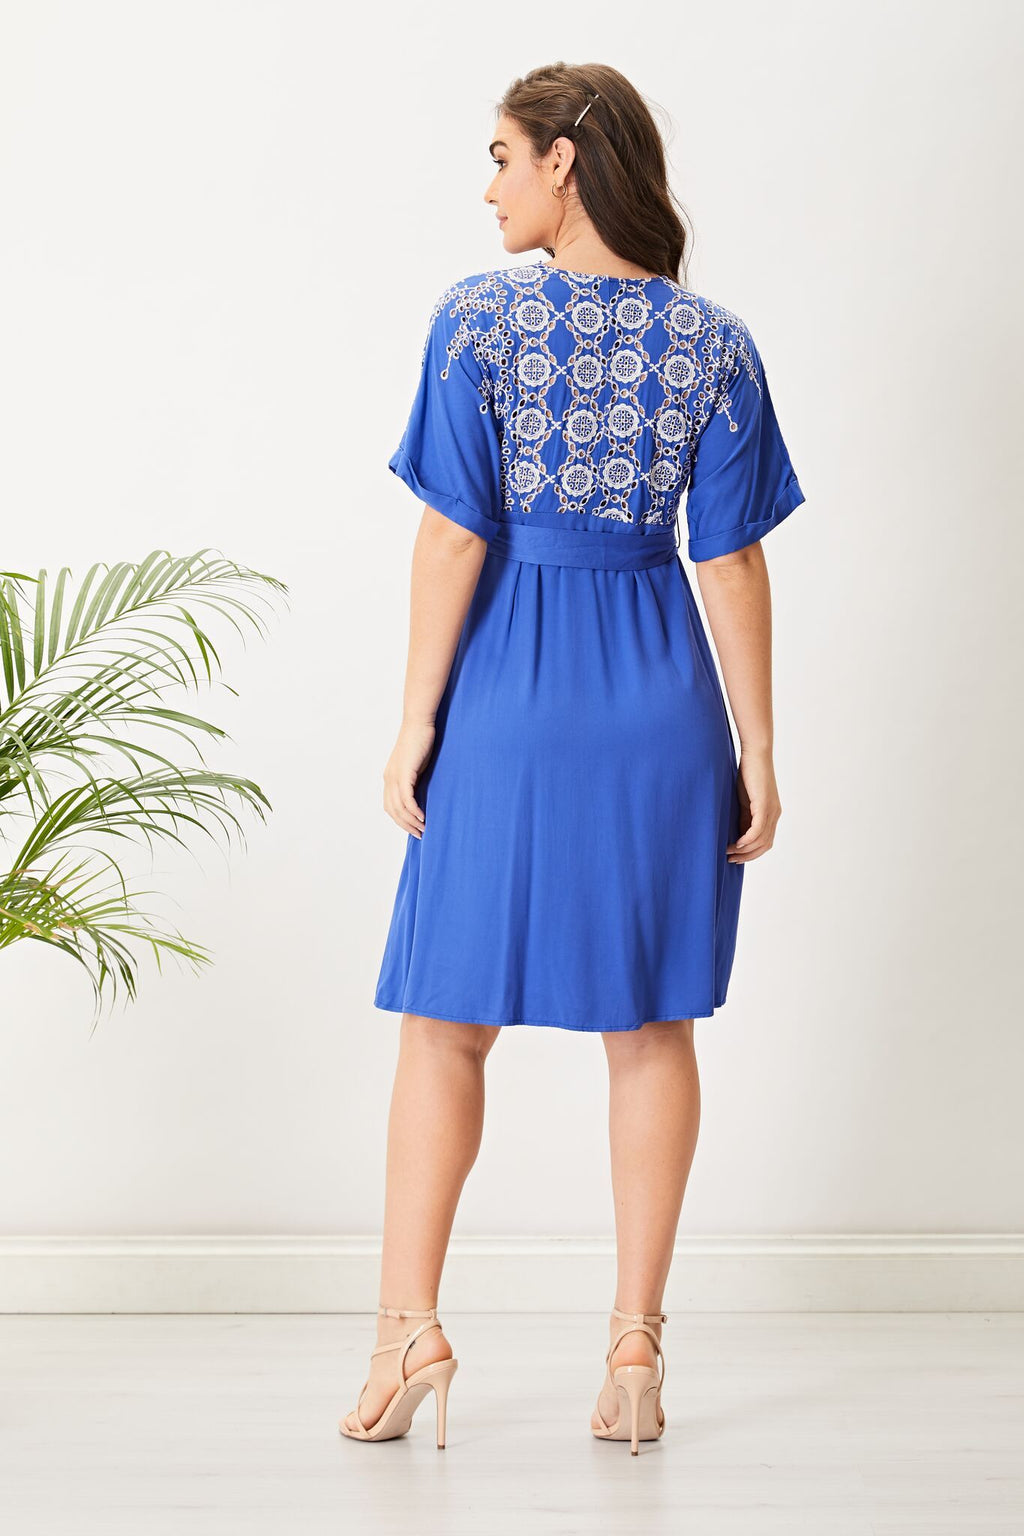 AngelEye Blue Broderie Anglaise Short Sleeve Mini Dress